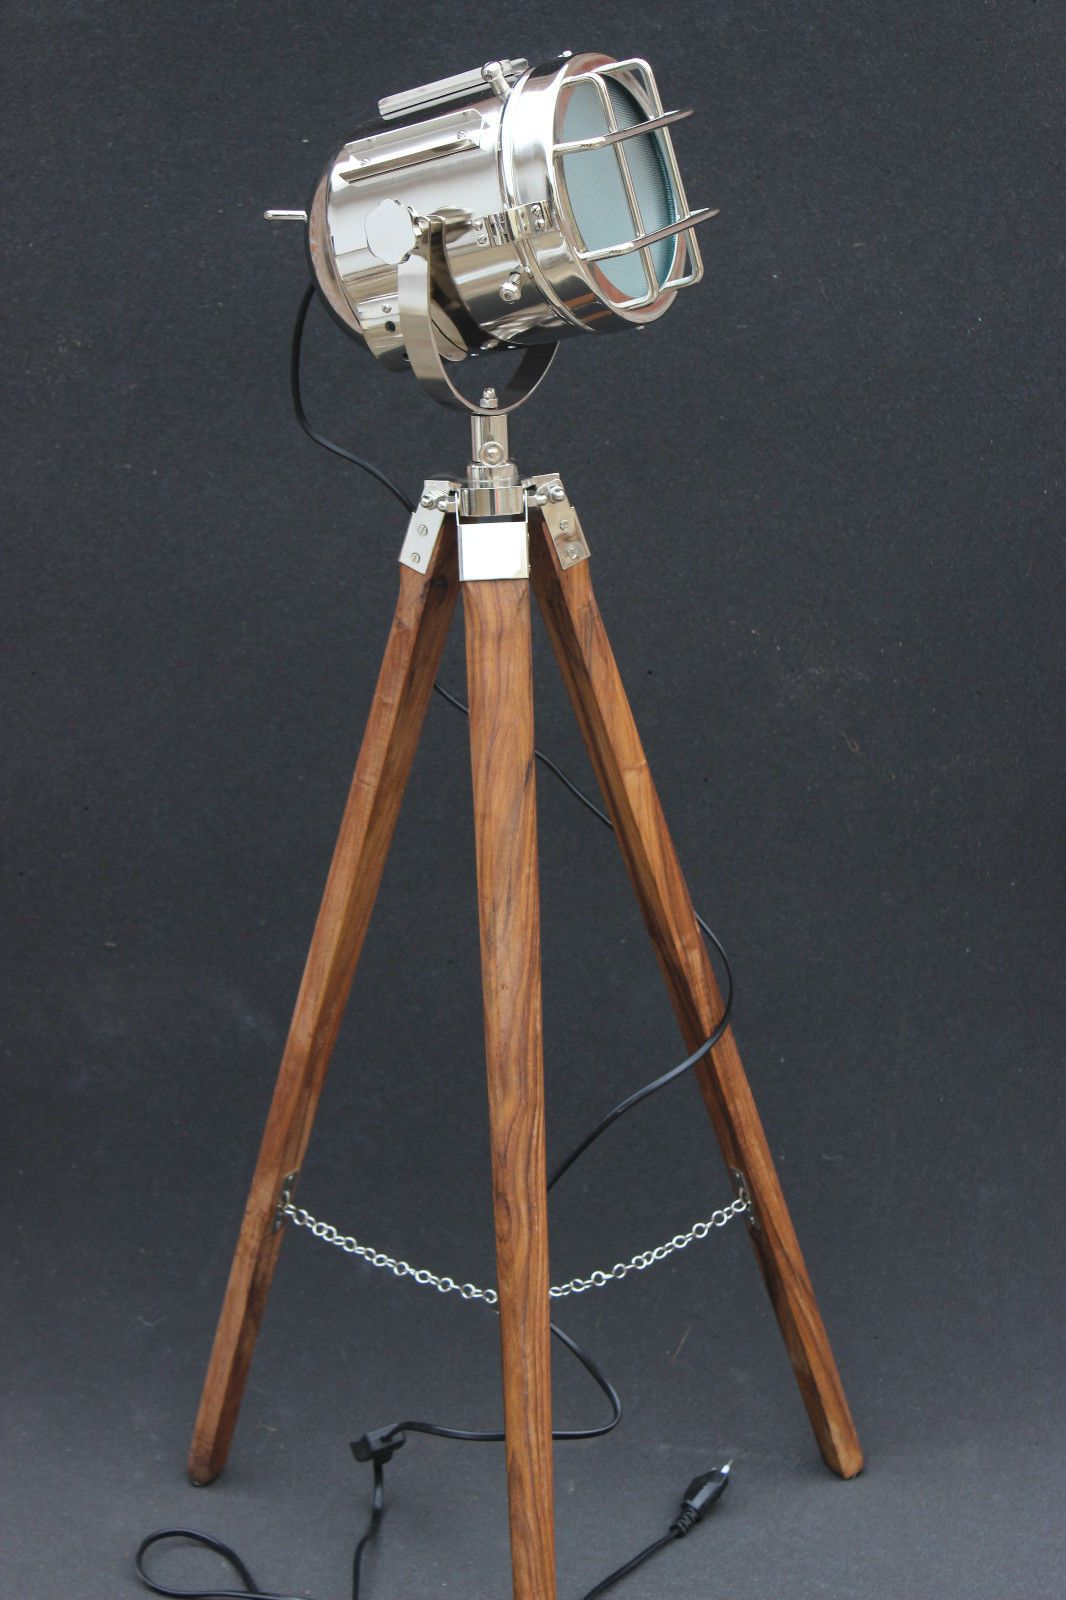 Nautical tripod floor lamp photo 9 18 wauwinnet ave pinterest nautical tripod floor lamp photo 9 aloadofball Image collections